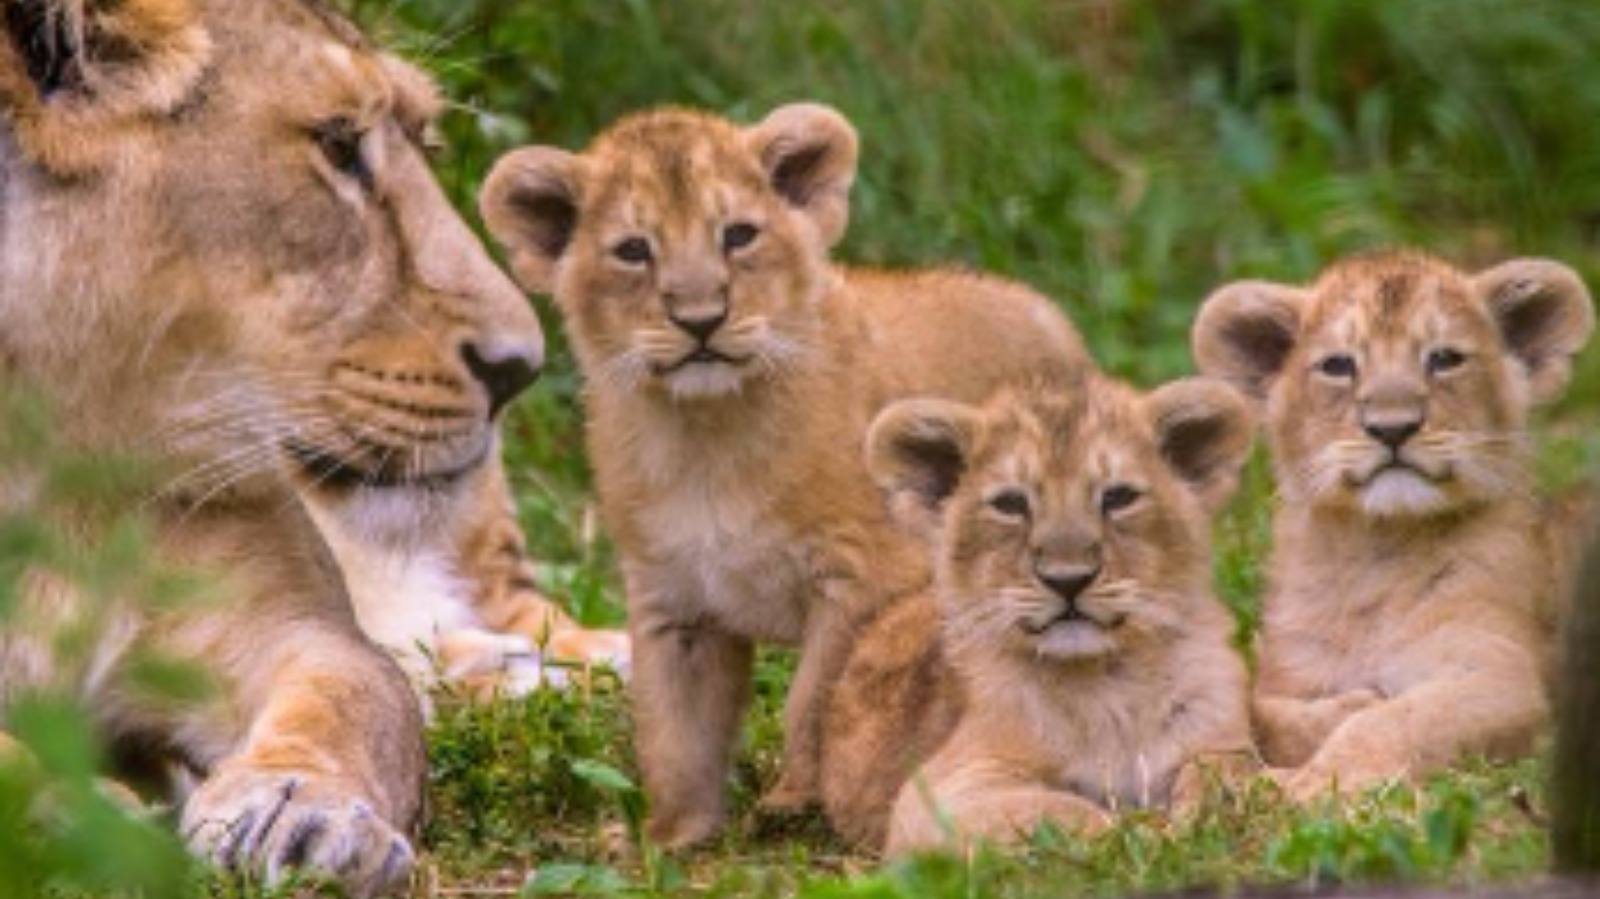 Wildlife Park Celebrates Birth Of First Rare Lion Cub